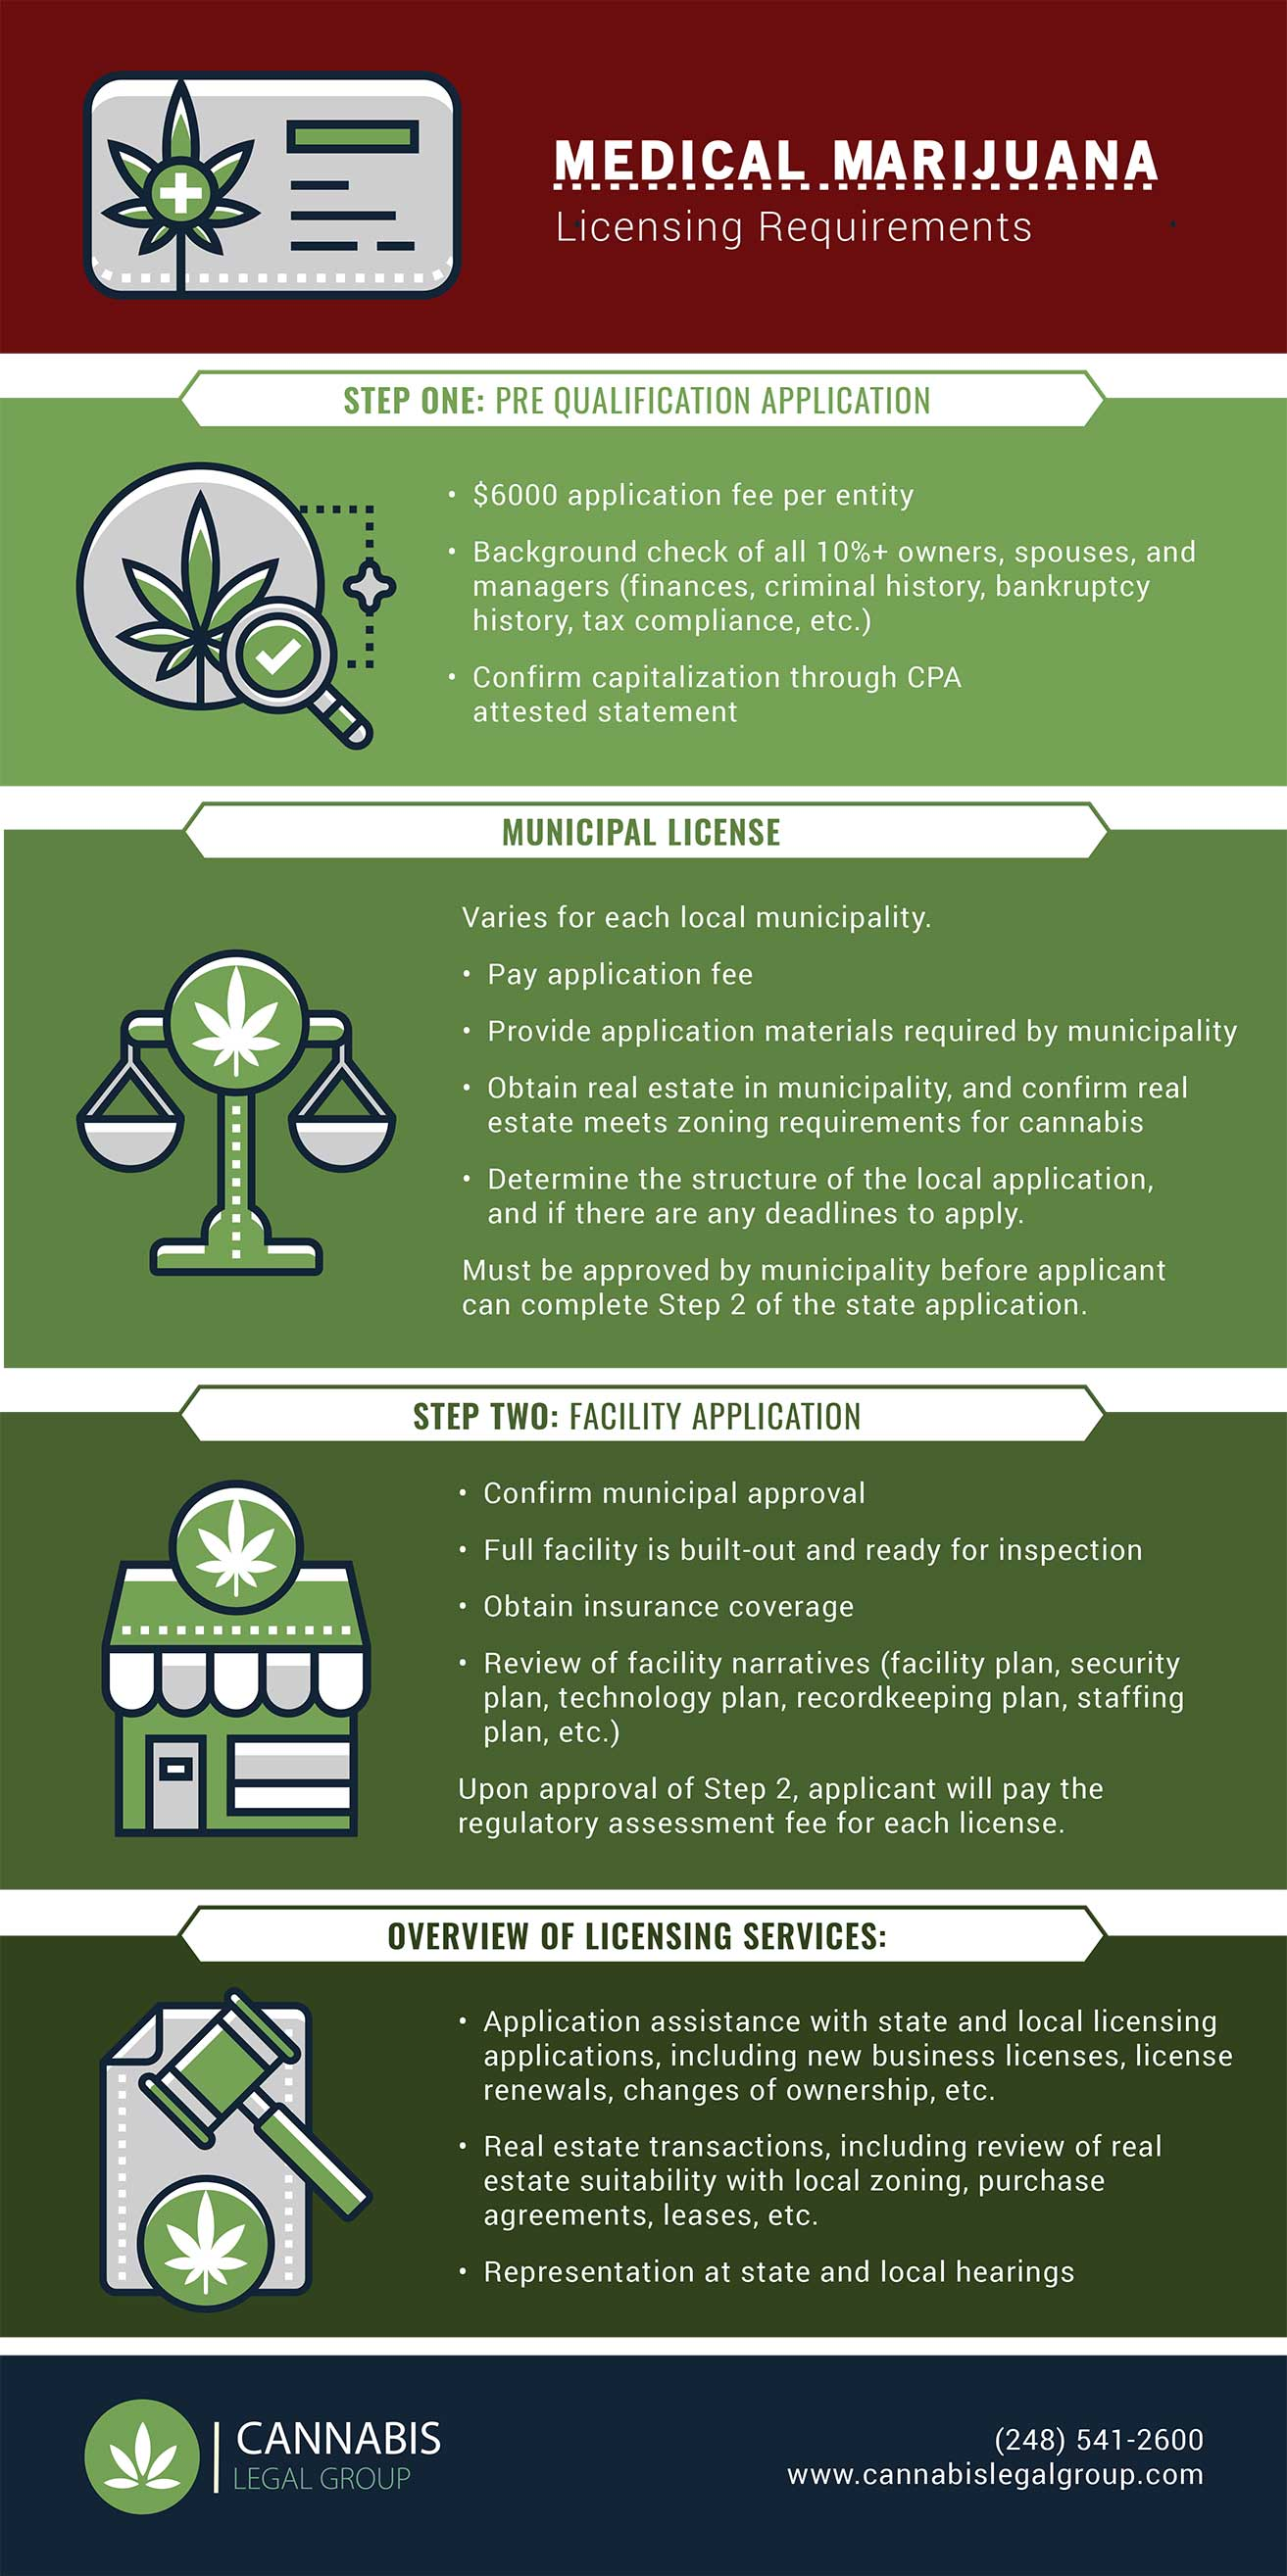 Medical Marijuana Licensing Requirements Infographic